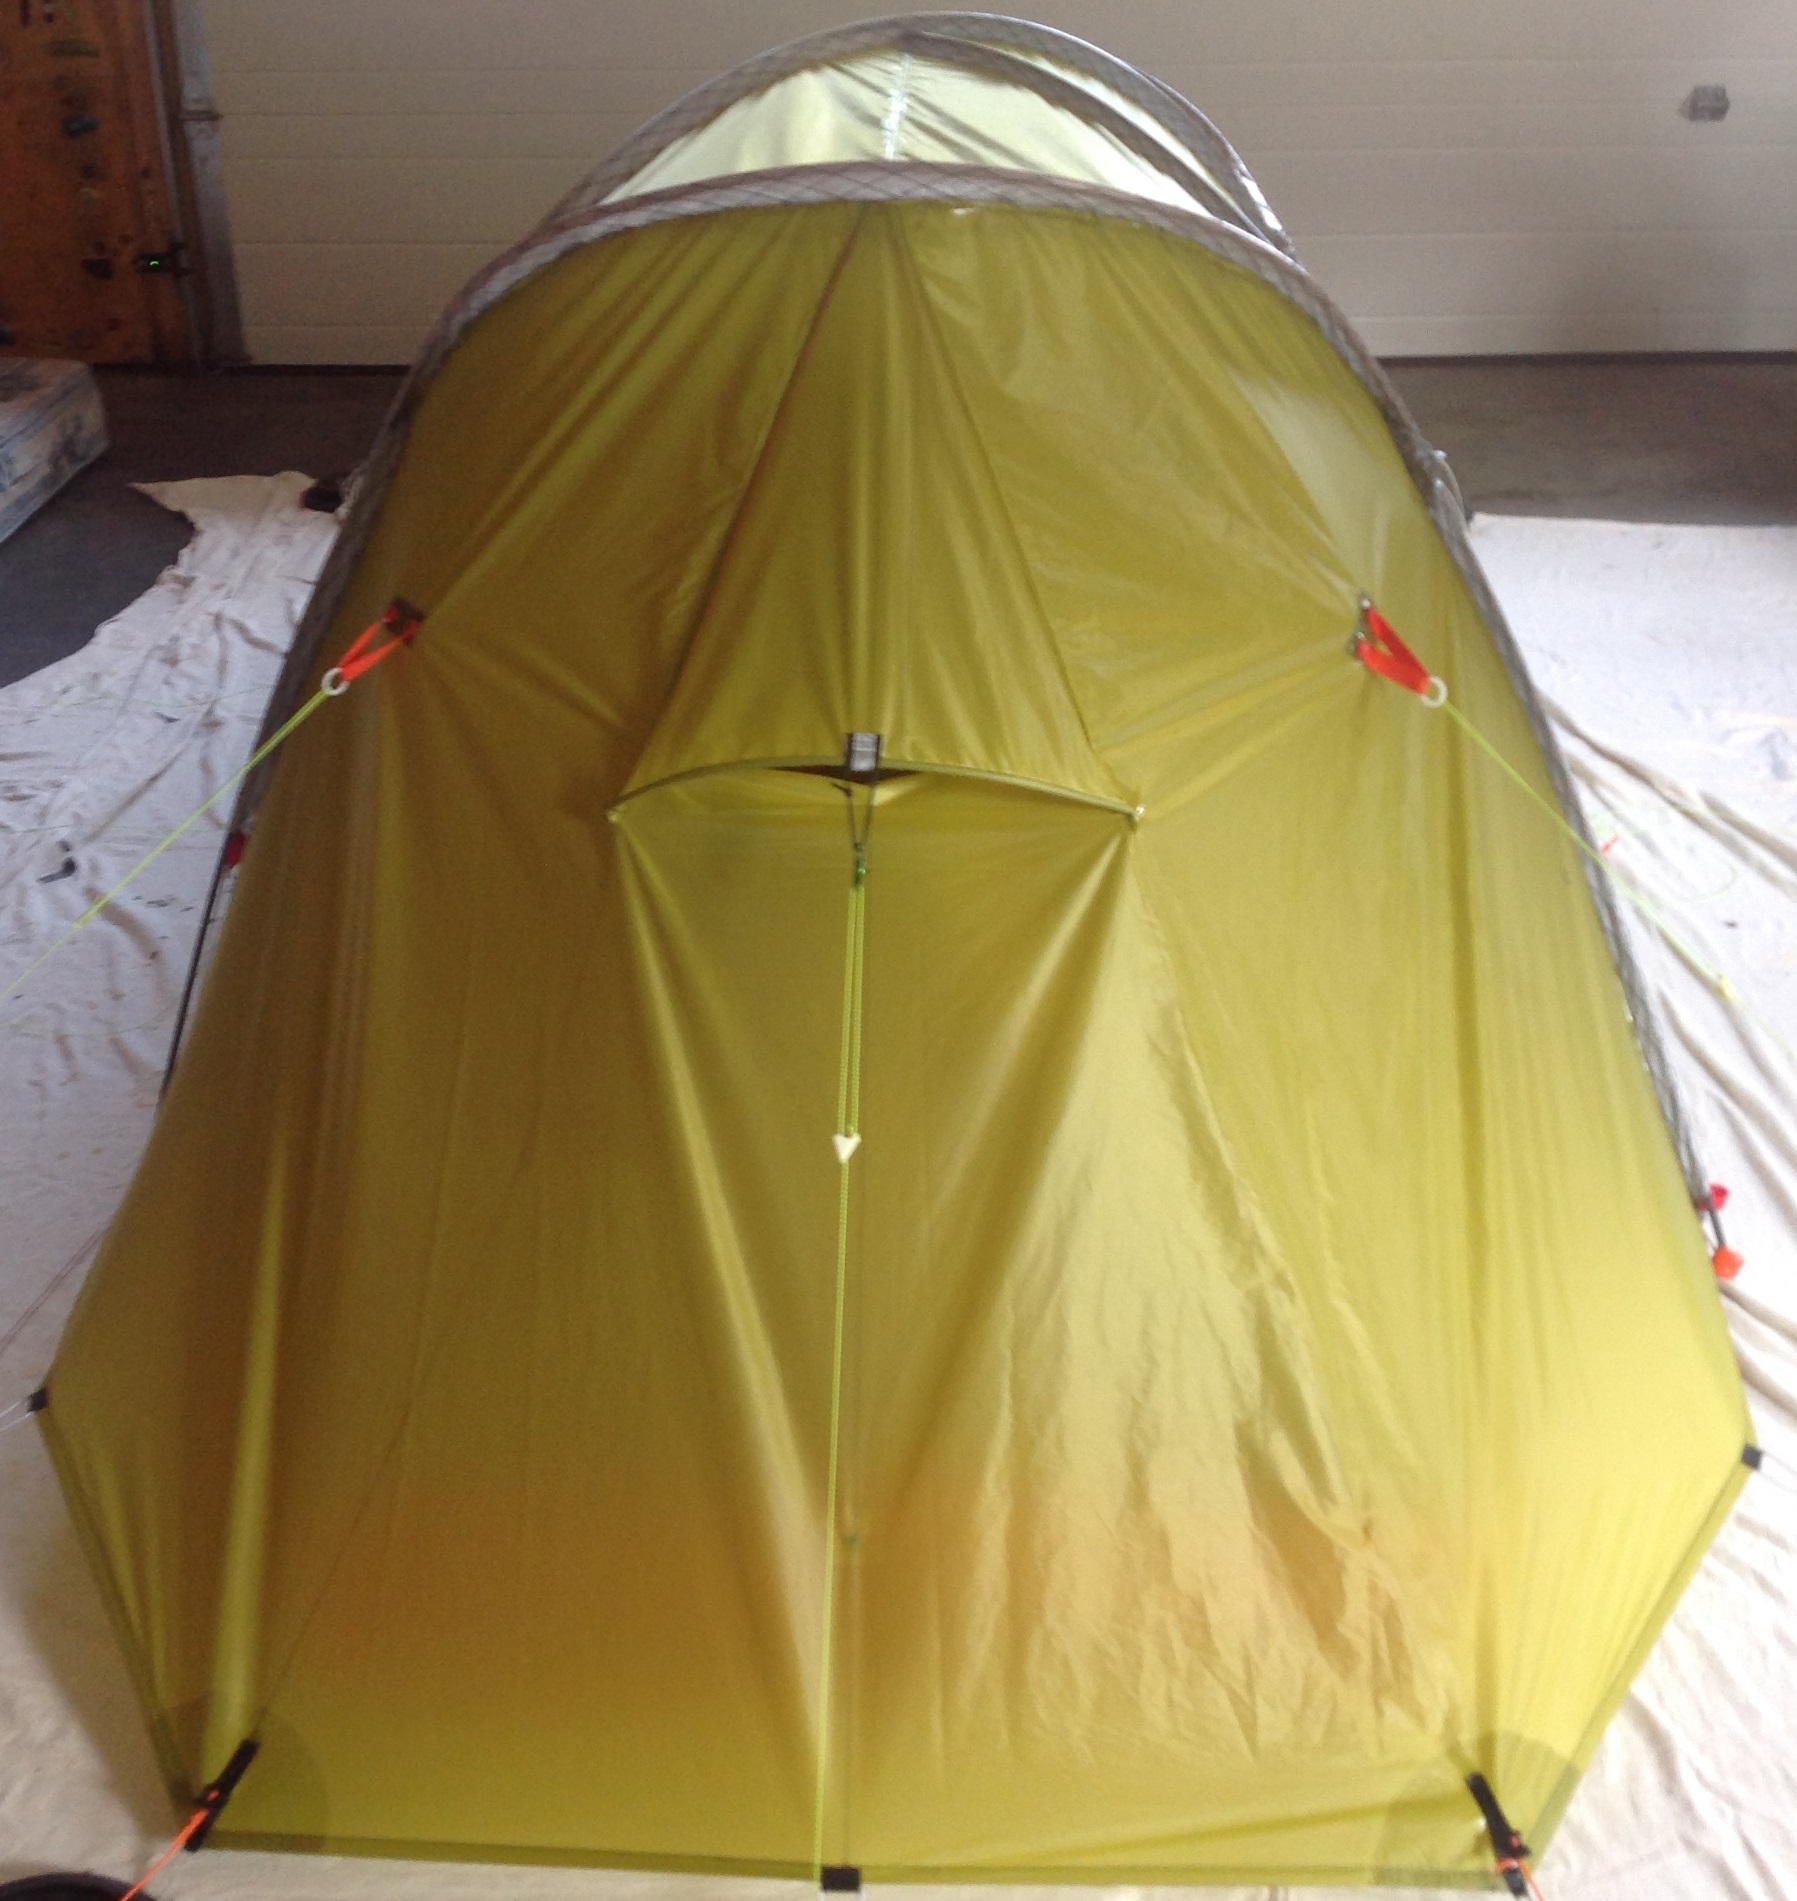 Myog 2p 4 season semi-geodesic tent & Myog 2p 4 season semi-geodesic tent - Backpacking Light